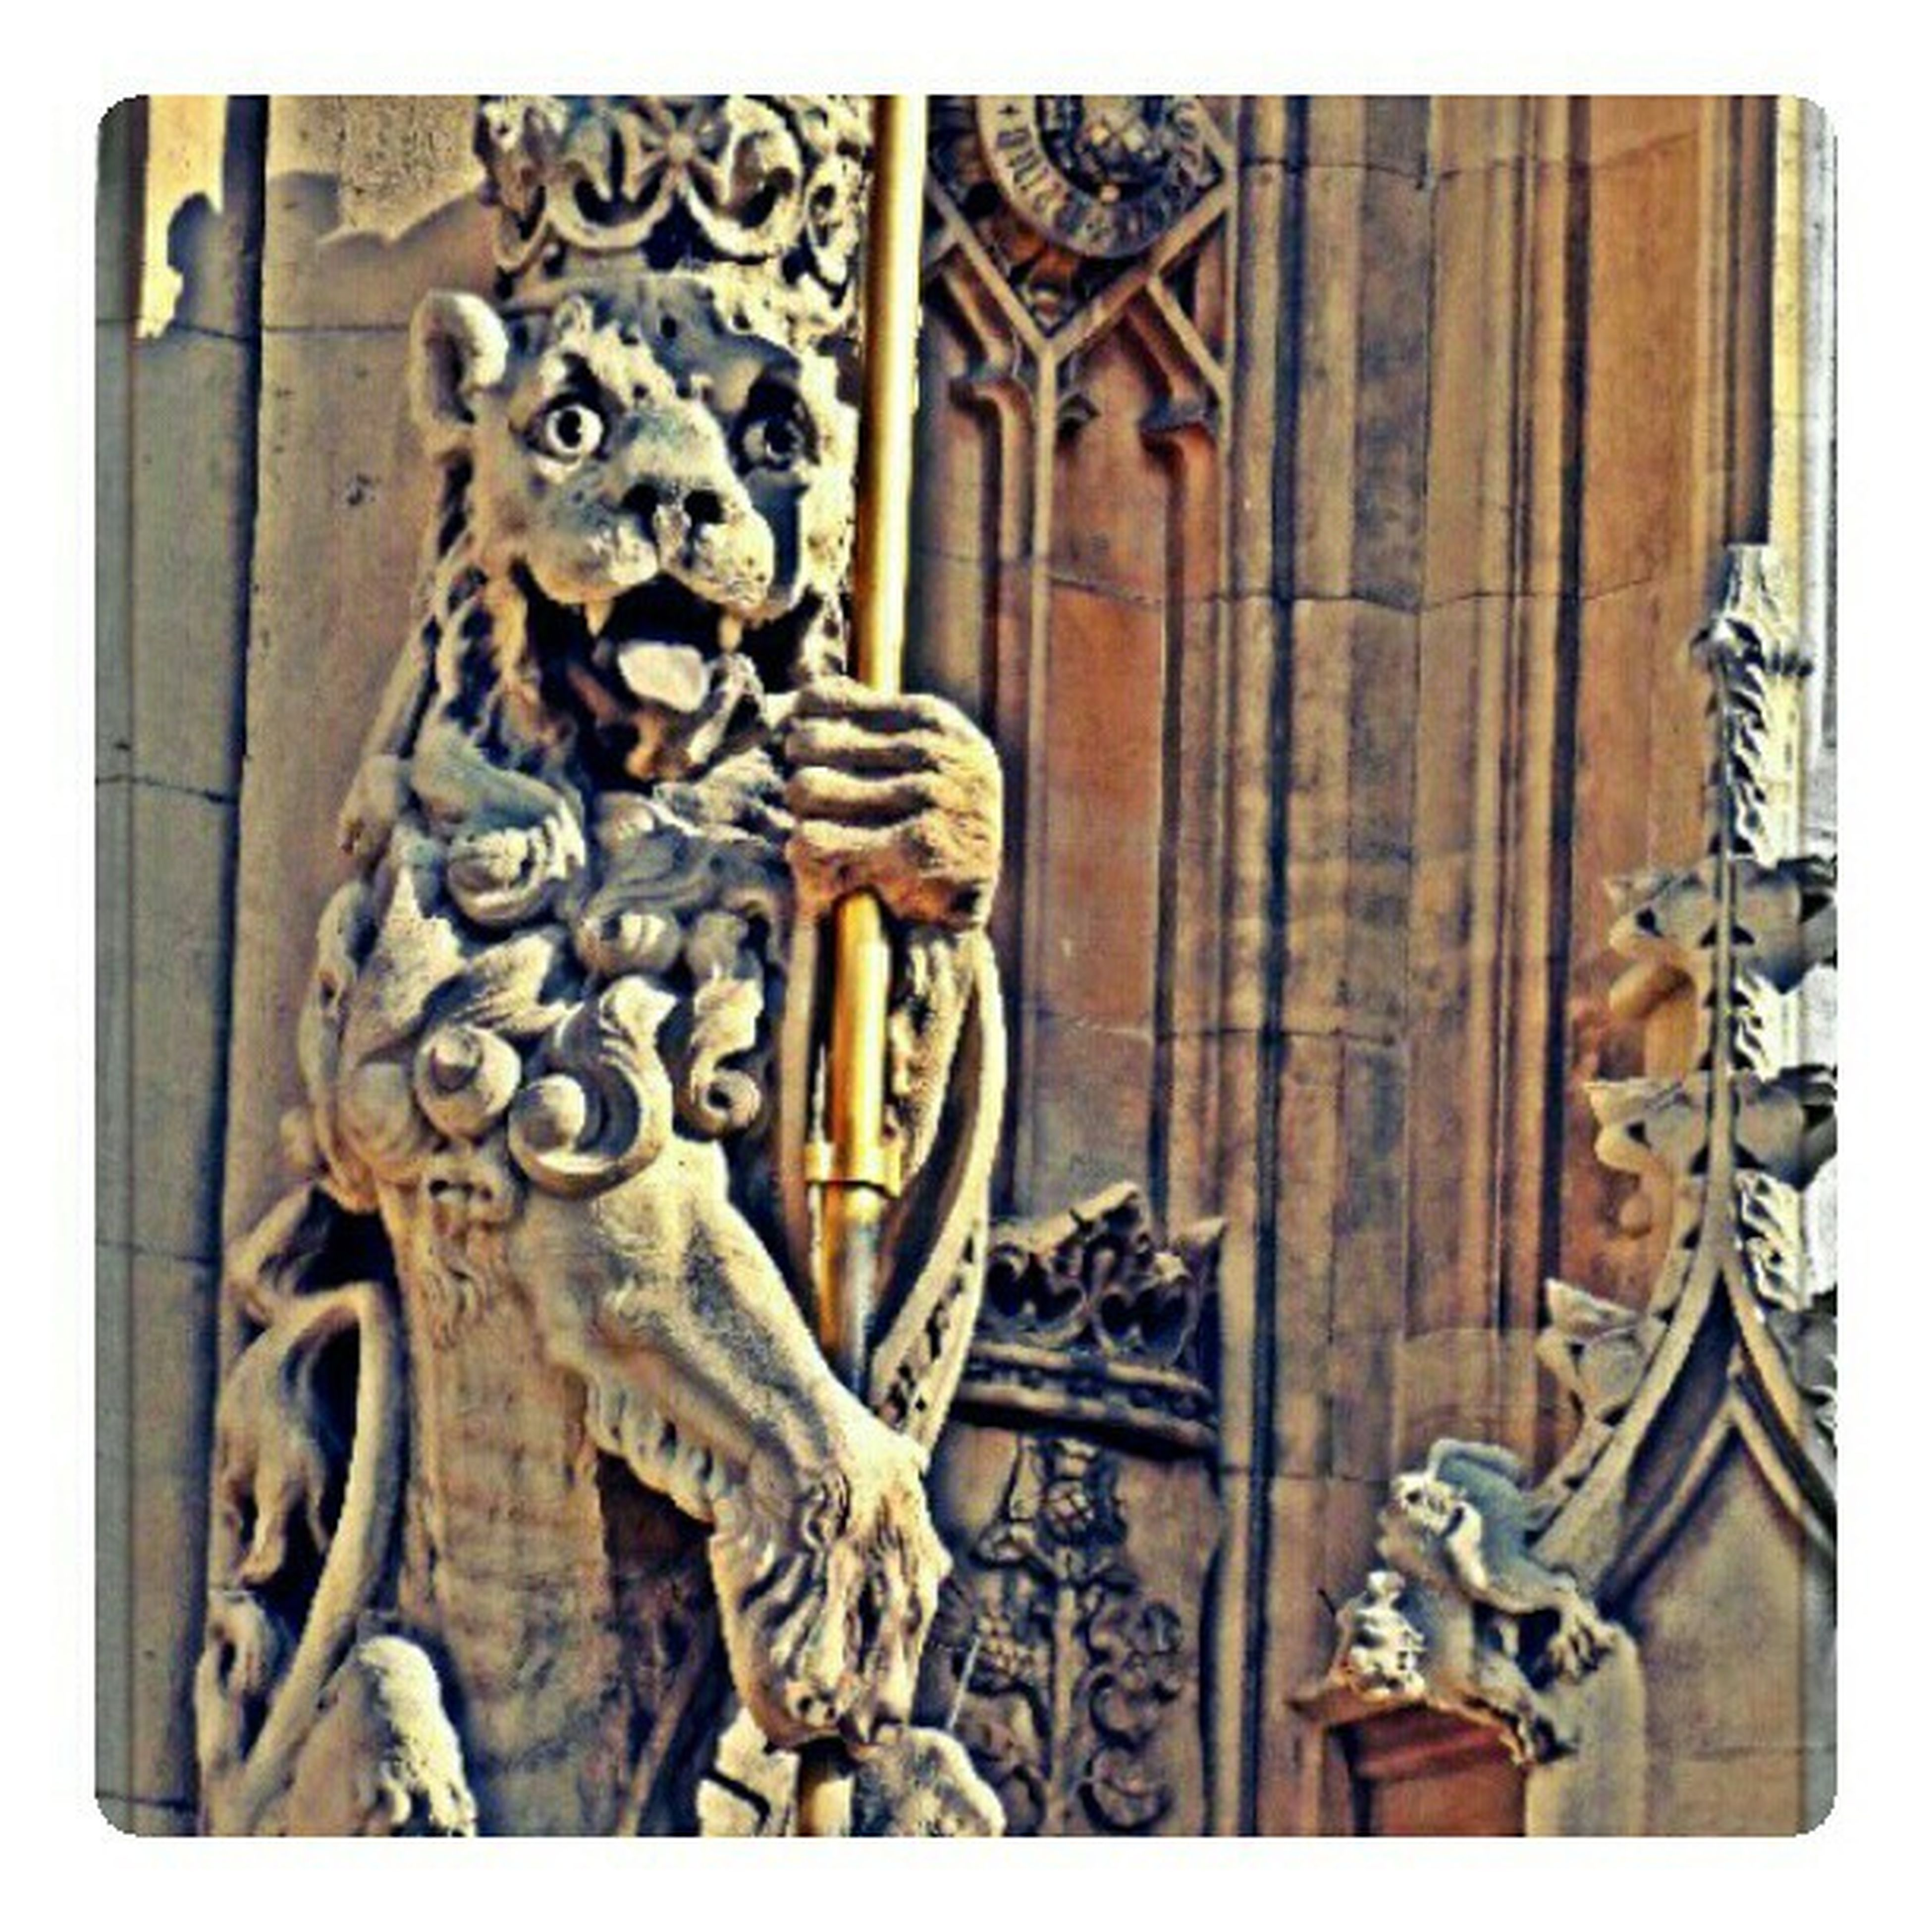 transfer print, art and craft, human representation, art, statue, auto post production filter, creativity, sculpture, carving - craft product, old, animal representation, ornate, close-up, built structure, door, religion, wall - building feature, no people